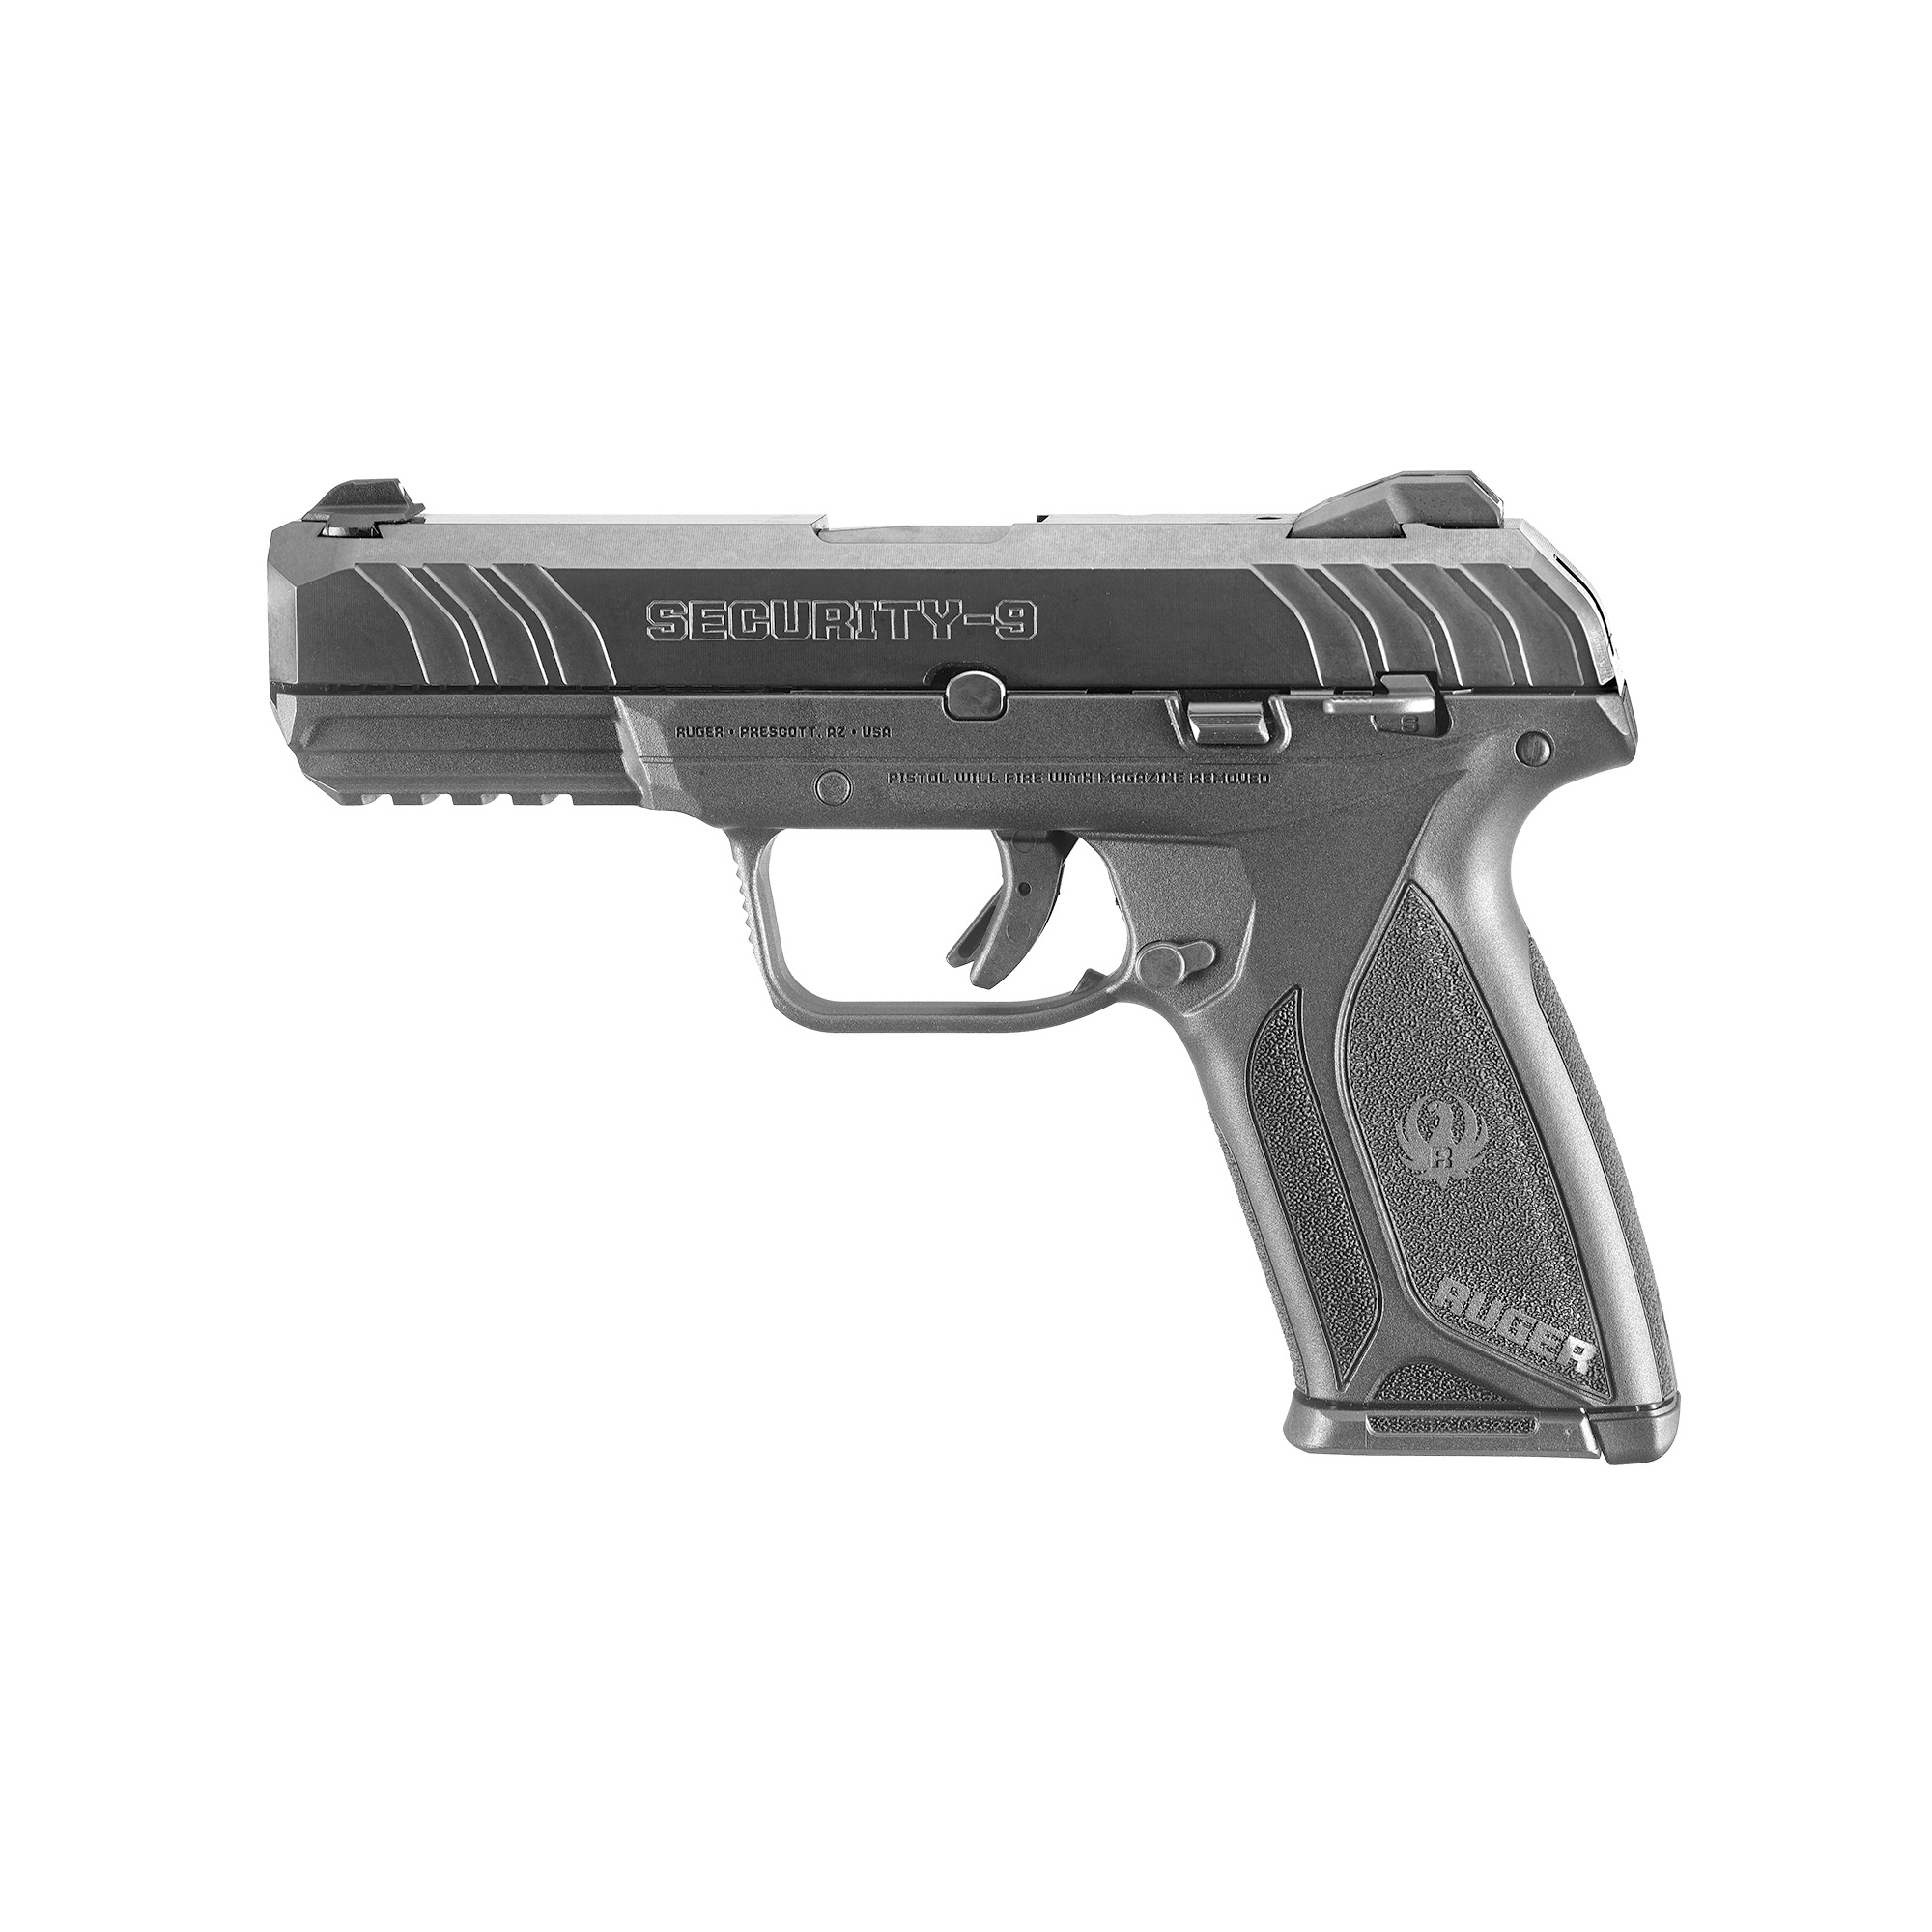 """When it comes to security"""" simple and affordable is hard to beat. Ruger's Security-9 is ideal for everyday carry and self-defense. This mid-sized model is designed to fit a variety of available holsters and concealed carry options. The Secure Action used in the Security-9 is derived from the reliable and proven hammer-fired LCP fire control system. The Secure Action combines the smooth trigger pull of the LCP with the short"""" crisp feel and positive reset of a single action. The internal"""" Secure Action hammer provides strong ignition force yet allows for easier slide racking when compared with many striker-fired pistols. Front cocking serrations enable positive slide manipulation. The dovetailed"""" high-visibility sight system with drift adjustable rear sight and fixed front sight"""" can be easily changed out for different color options. Safety features include bladed trigger safety; manual safety; neutrally balanced sear with significant engagement and strong spring tension; and hammer catch to help prevent the hammer from contacting the firing pin unless the trigger is pulled. Includes two 15-round magazines."""